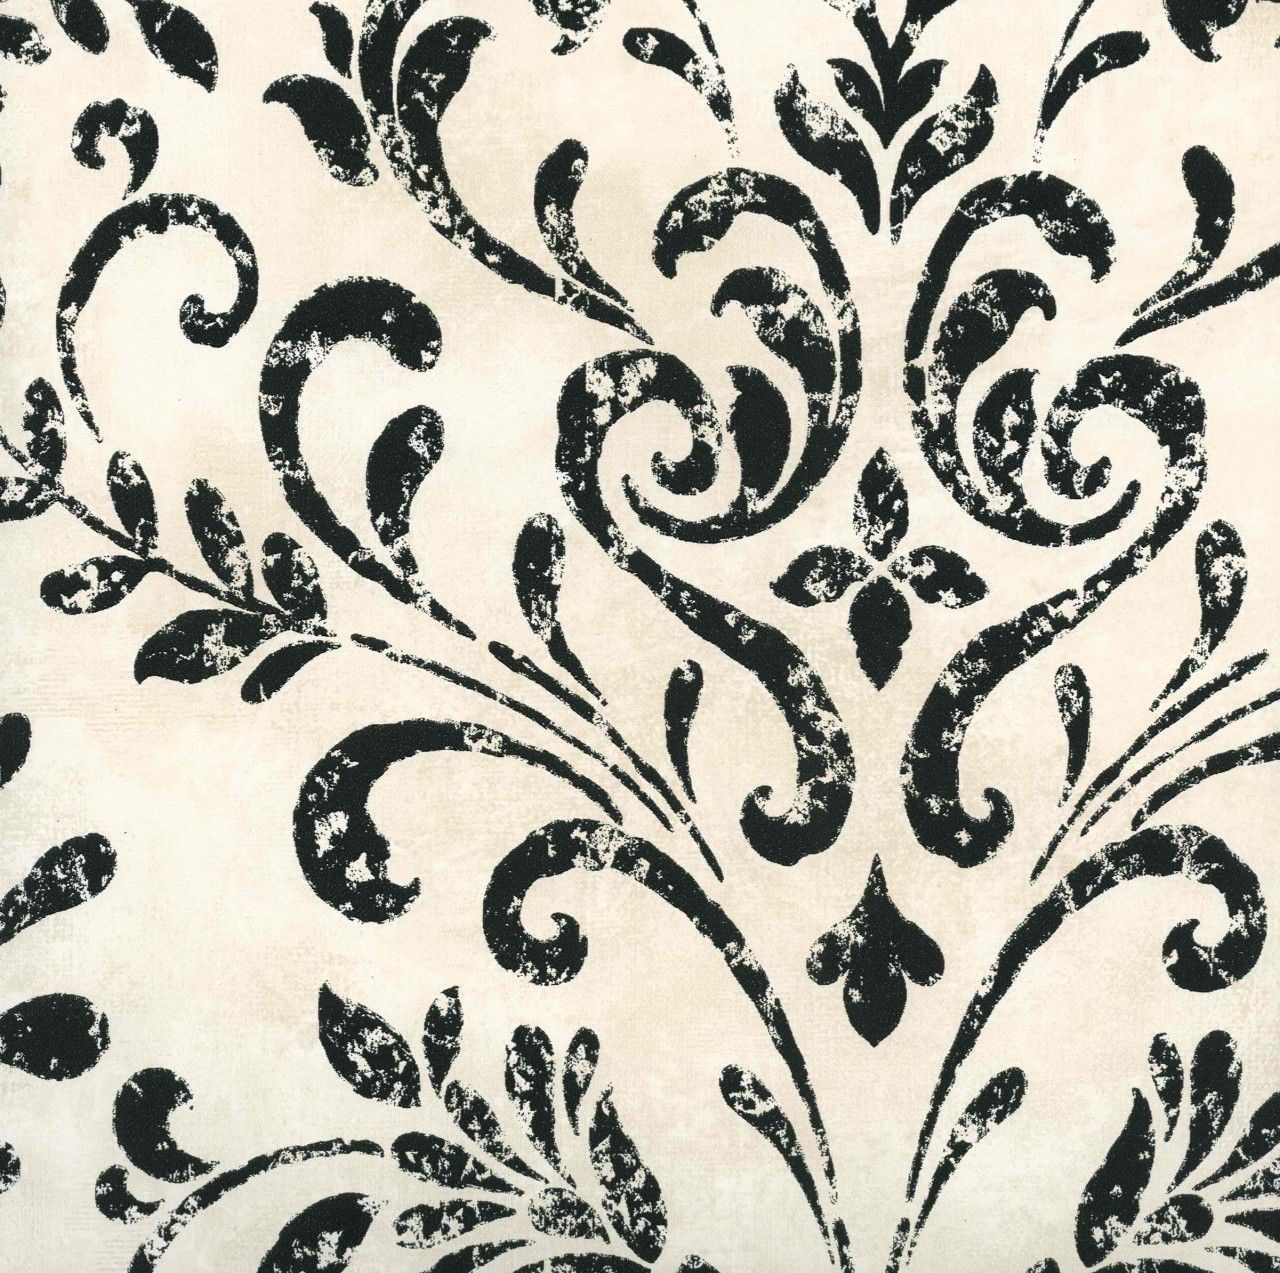 Cheap Damask Wallpaper Styles from B&-M Stores